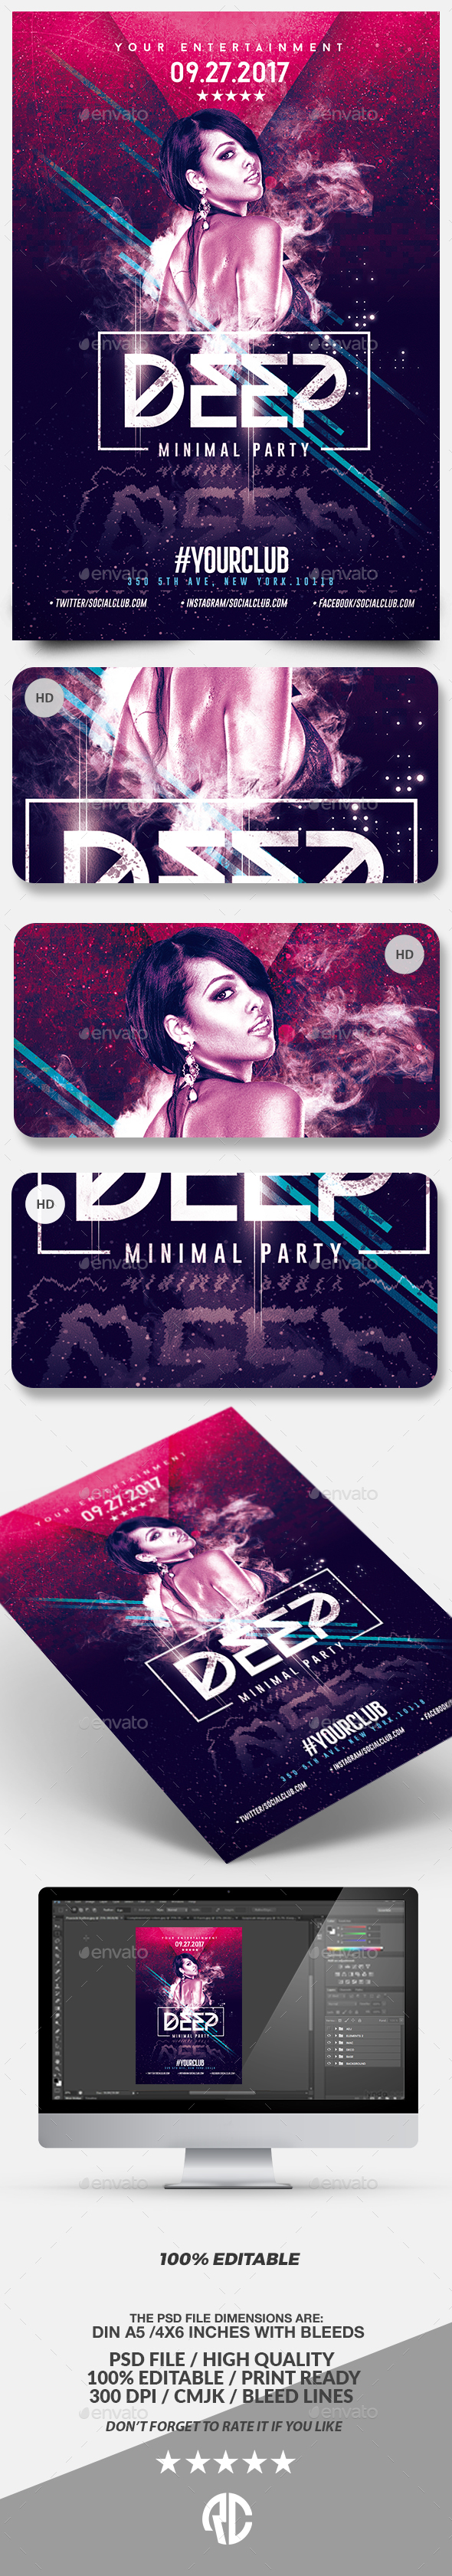 Deep Club Party | Minimal Flyer Template - Events Flyers